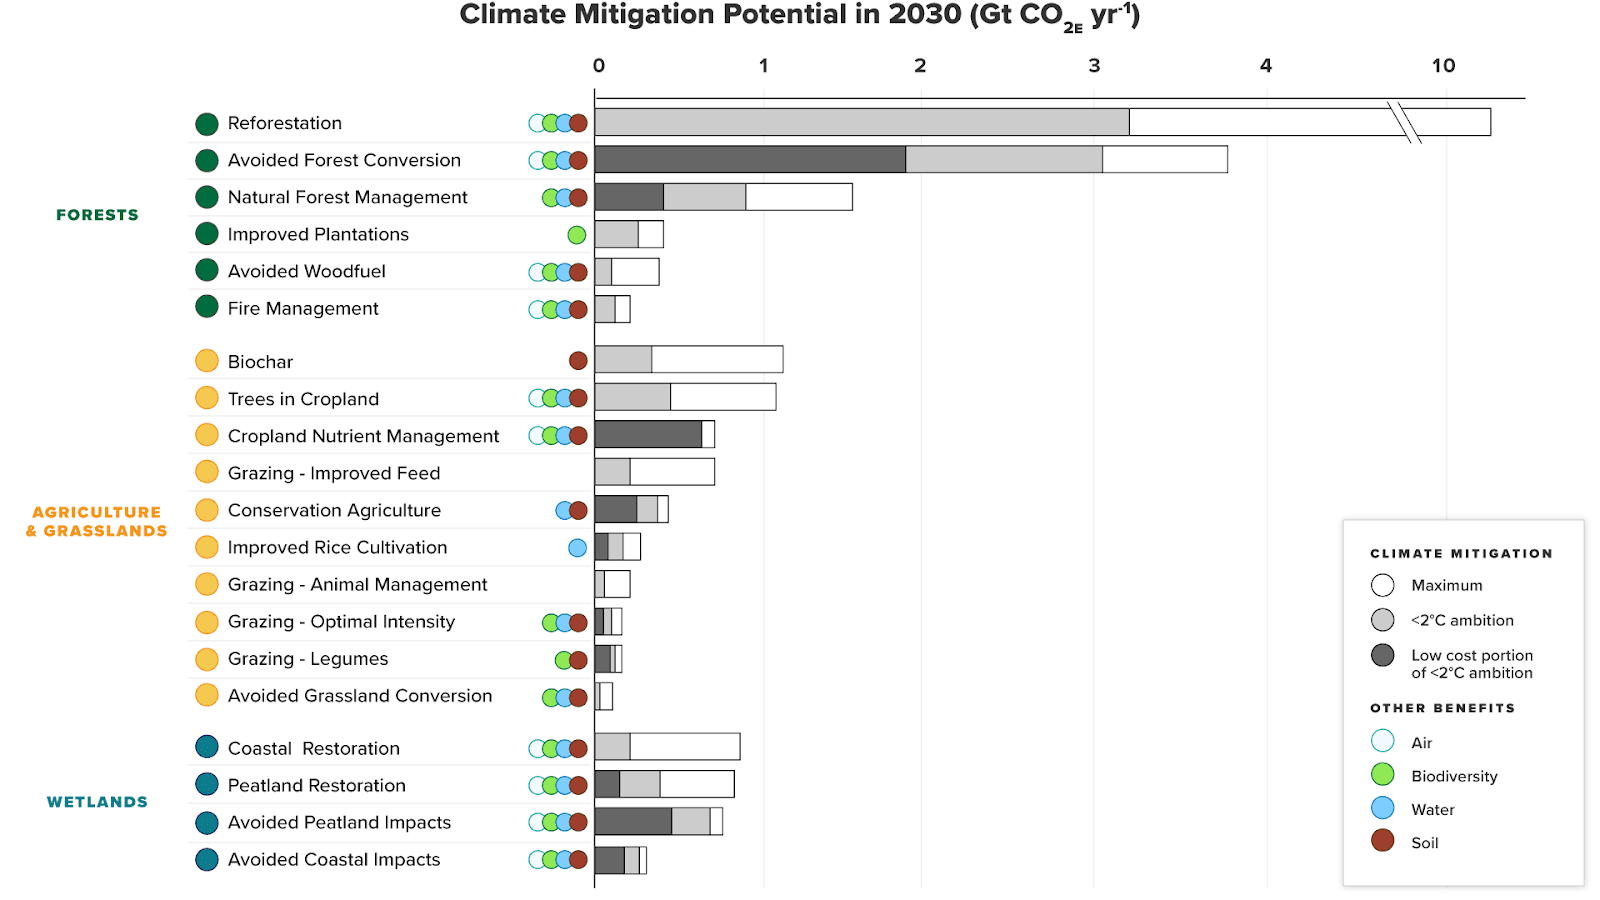 Climate mitigation potential of 20 natural climate solutions